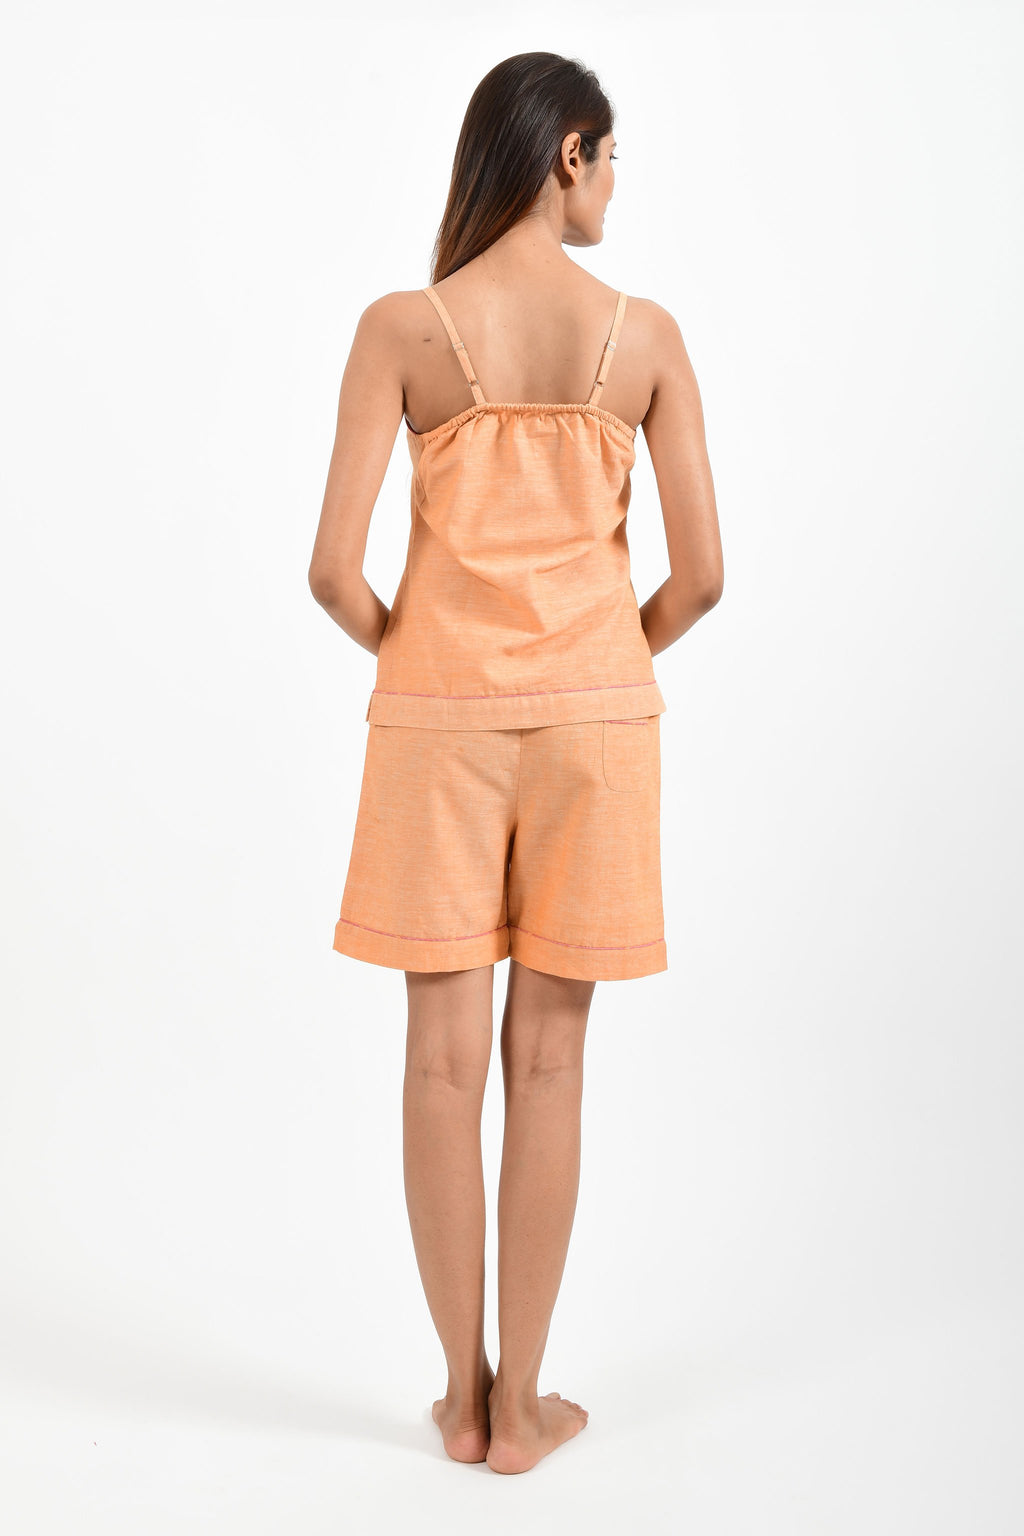 Back pose of an Indian female womenswear fashion model in azo-free dyed orange chambray handspun and handwoven khadi cotton spaghetti top and boxers by Cotton Rack.